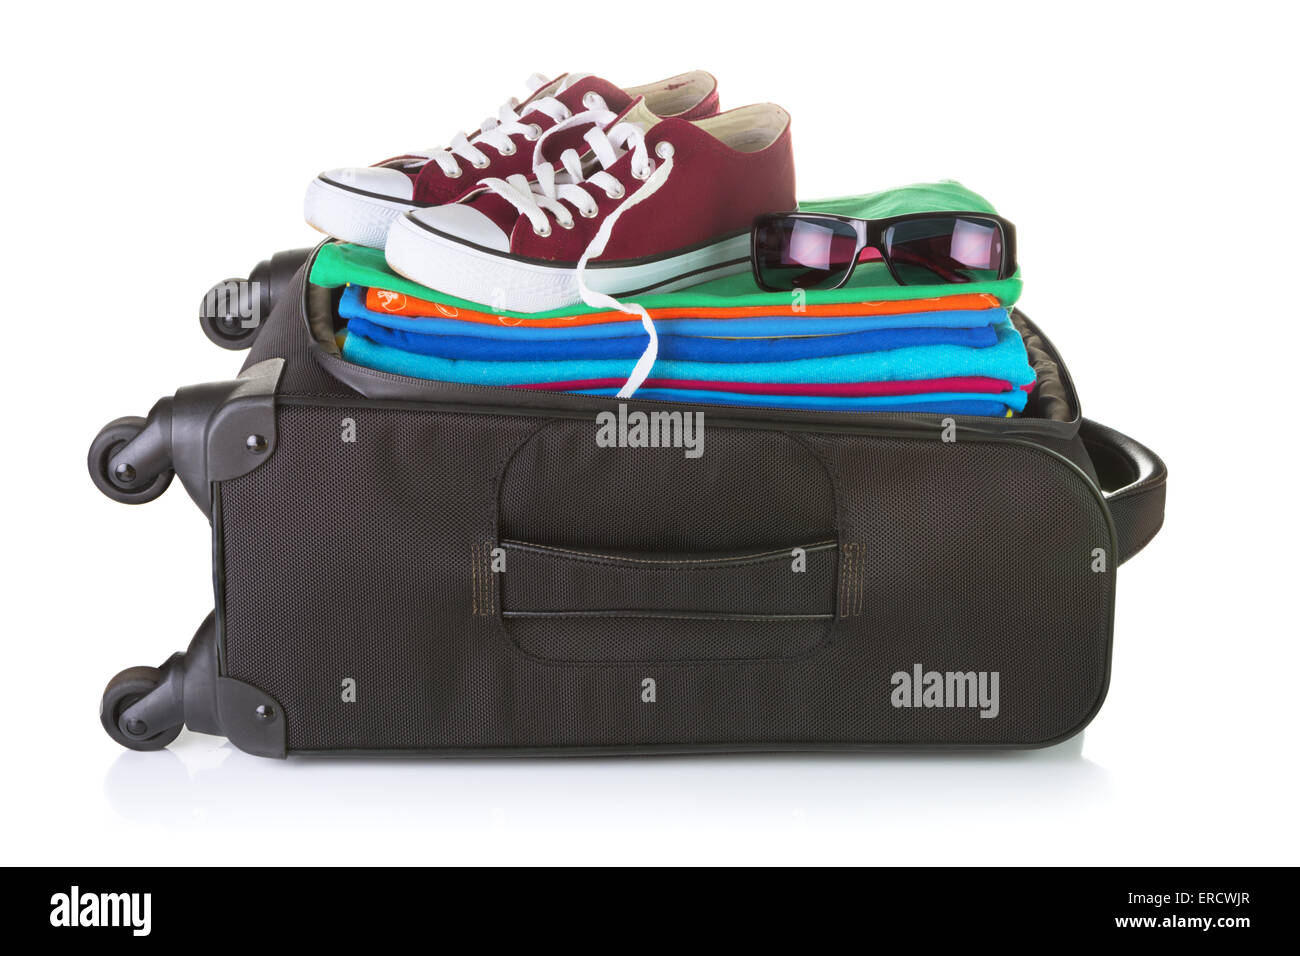 Ordinary wheeled black suitcase packed with bright summer clothes, sneakers, and sunglasses. Isolated on white - Stock Image